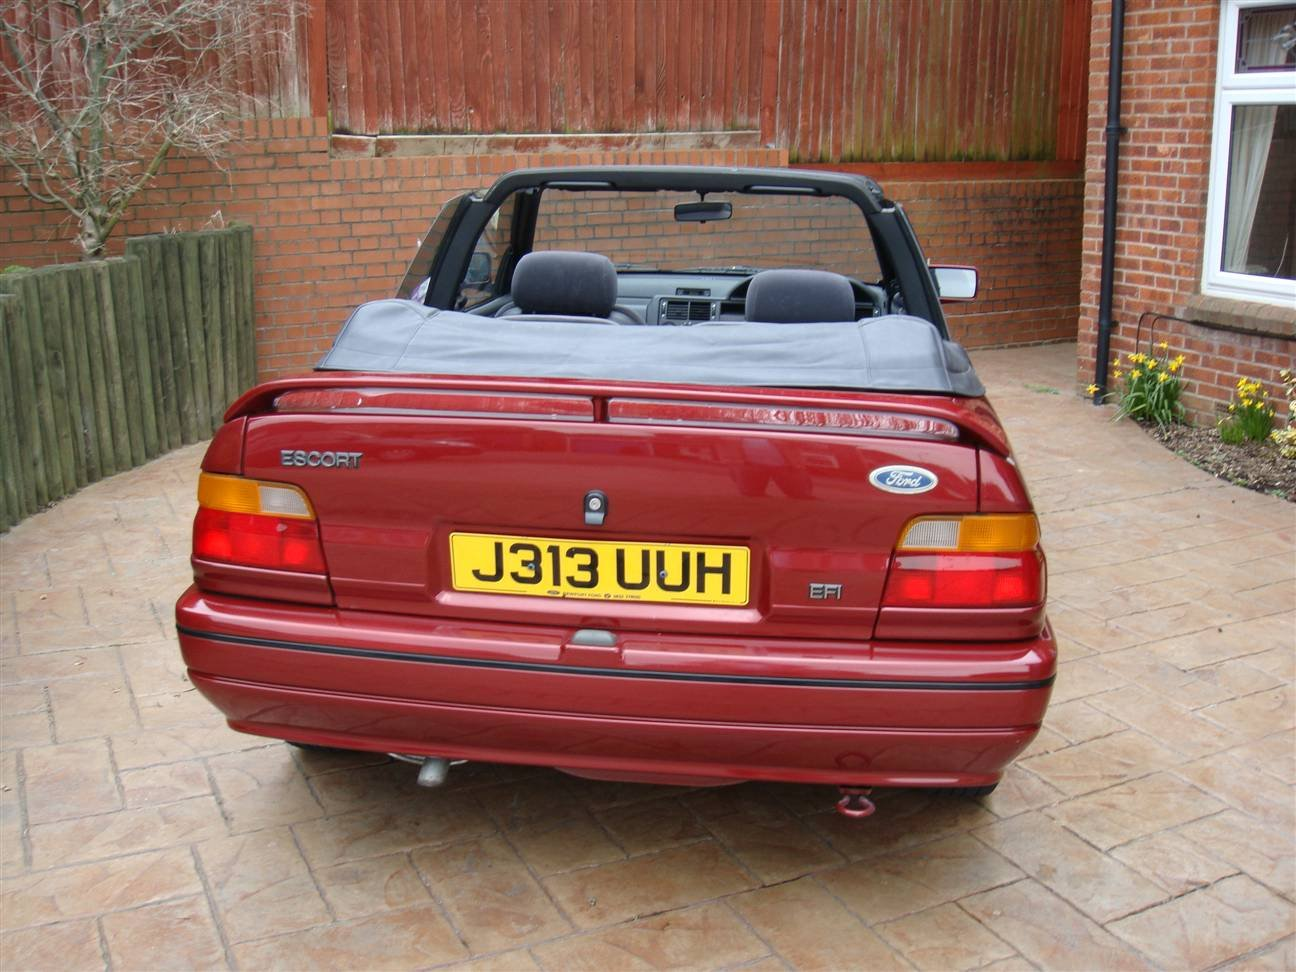 1992 Escort Cabriolet (Bardolino Red ) SOLD (picture 4 of 6)